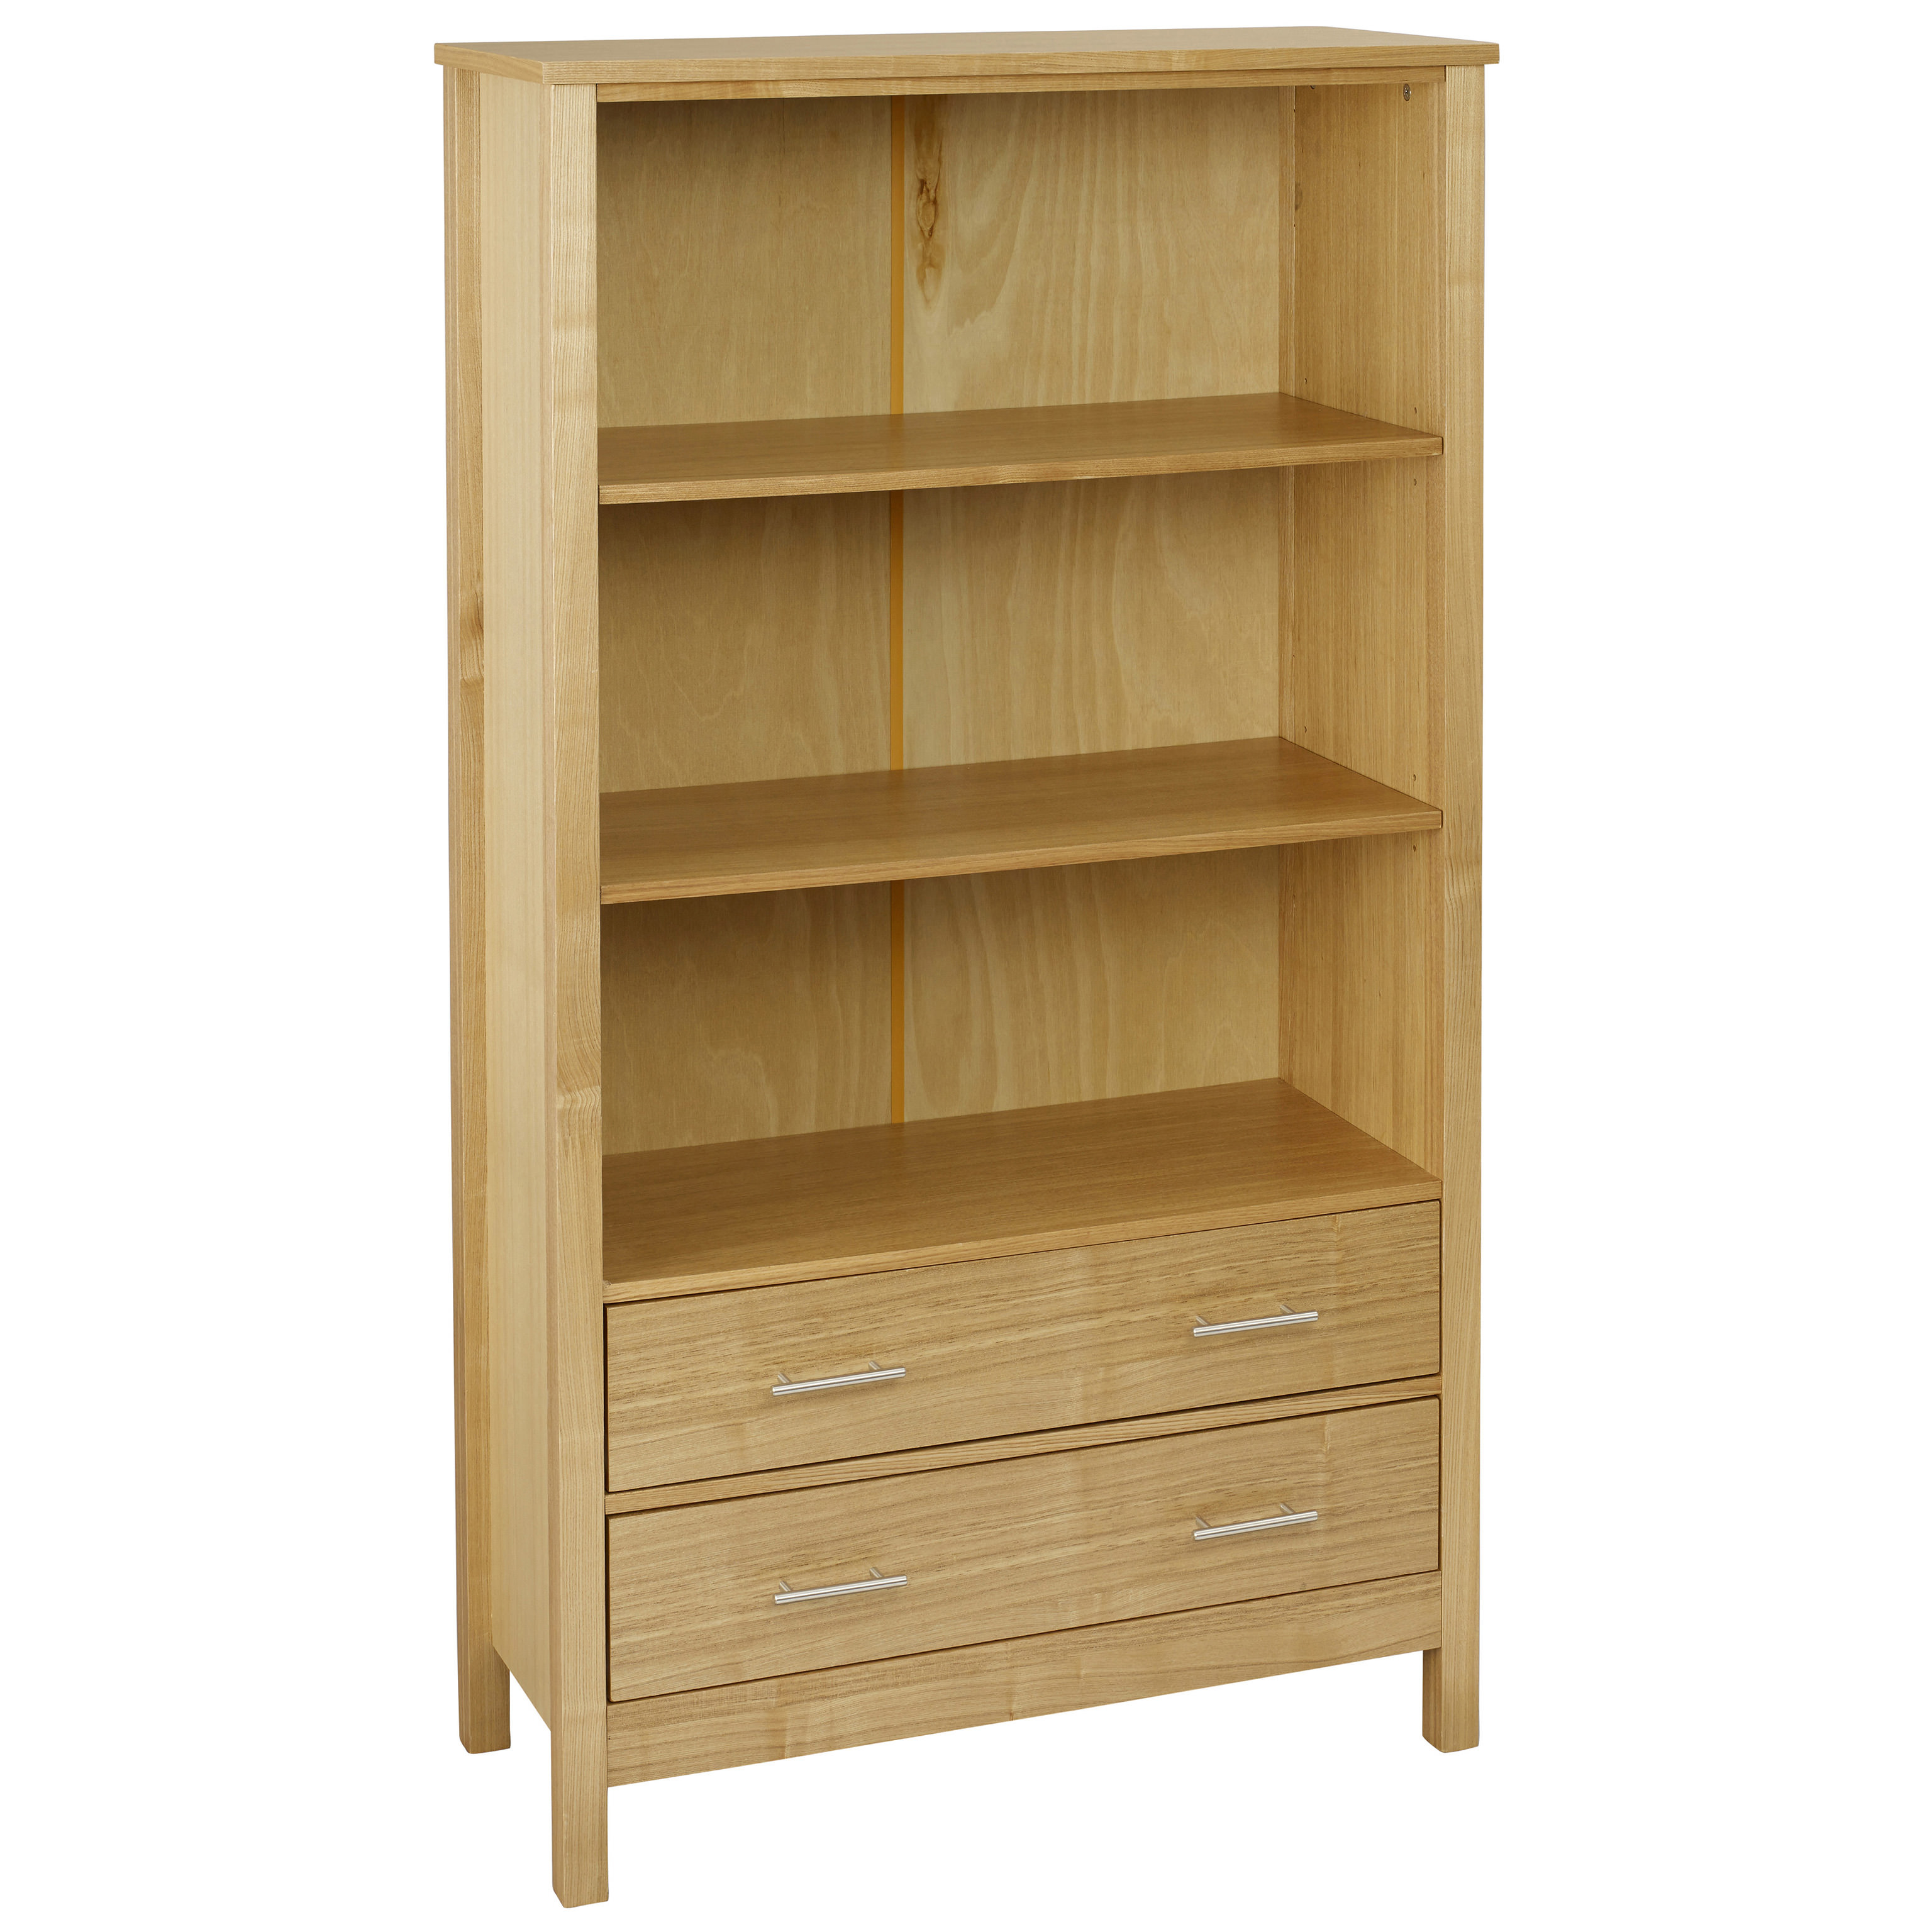 open metal sleek shelf pin clean two construction with design boasts a our bookcase